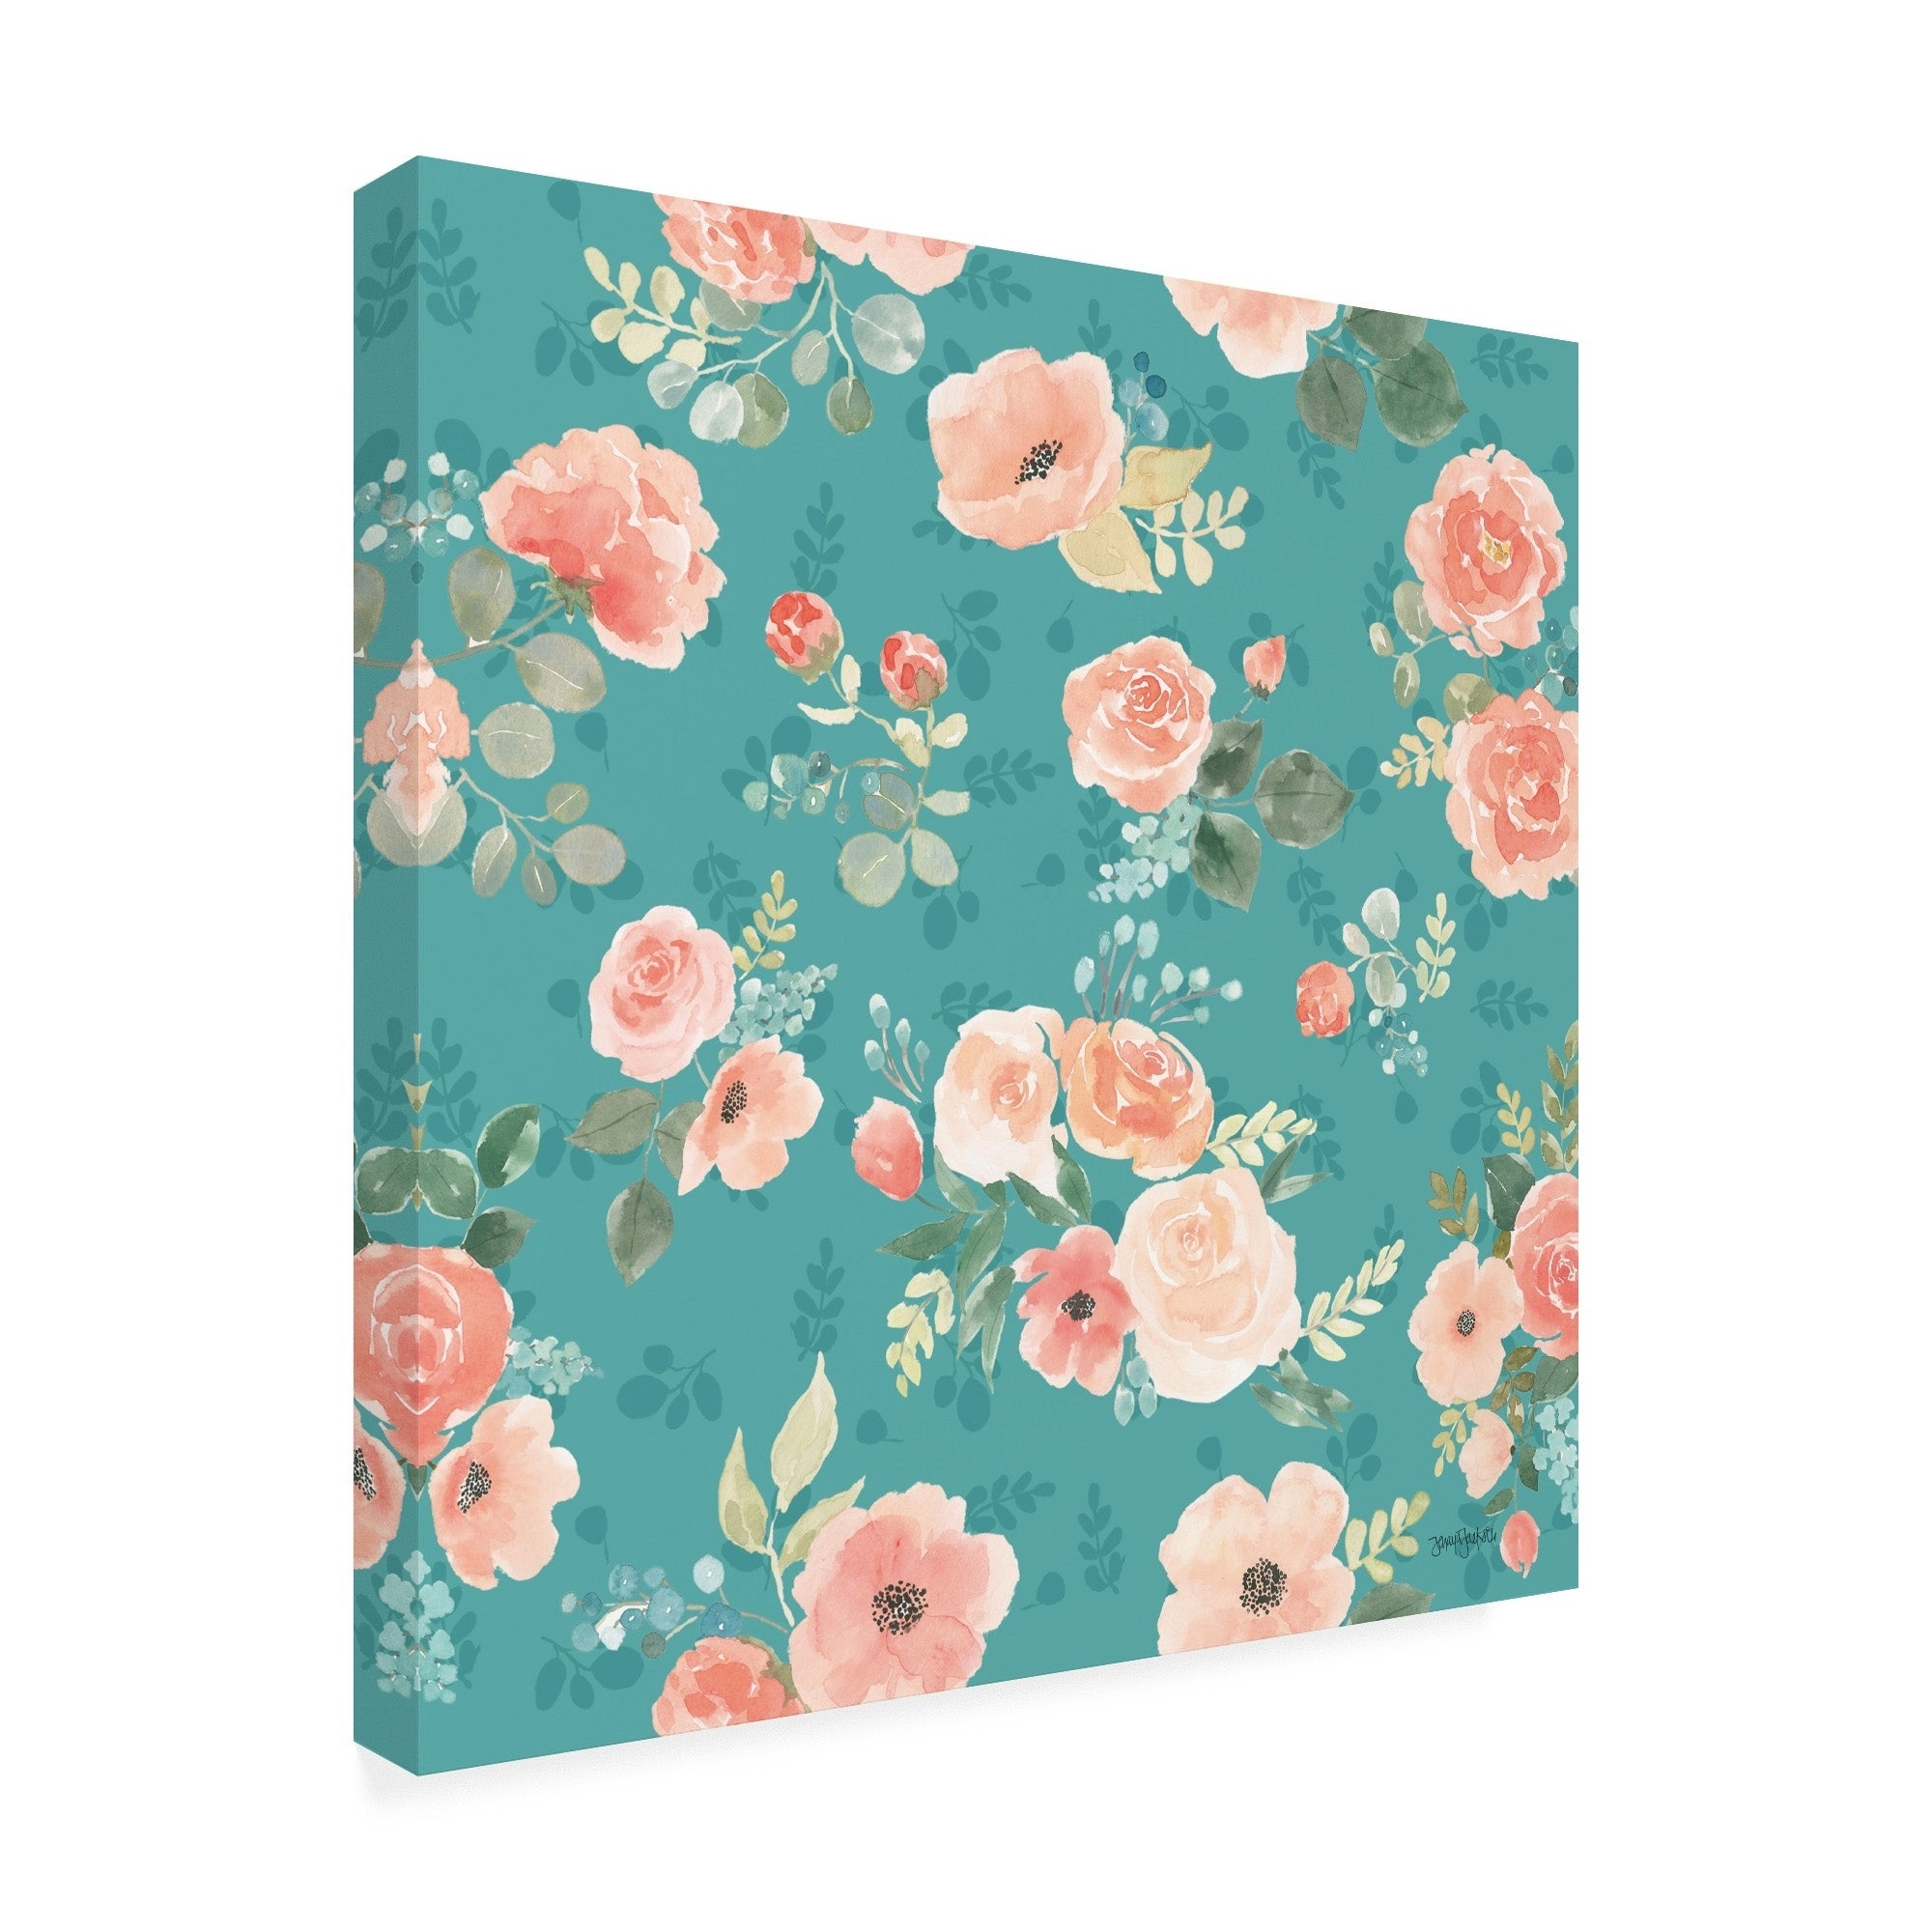 Shop Jenaya Jackson Blooming Delight Pattern IC Canvas Art 2000x2000